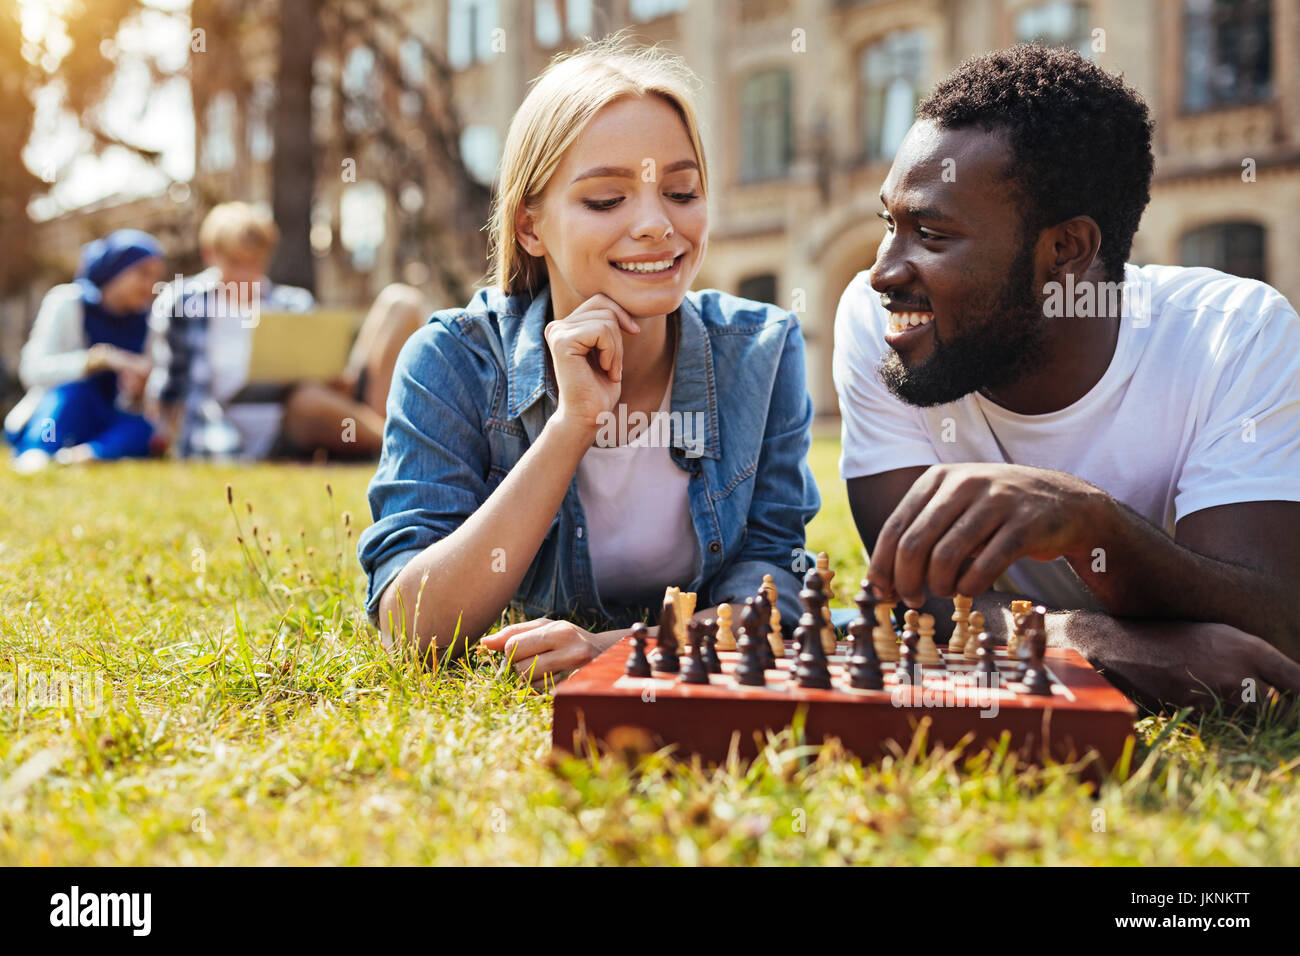 Positive pretty woman teaching her friend playing chess - Stock Image